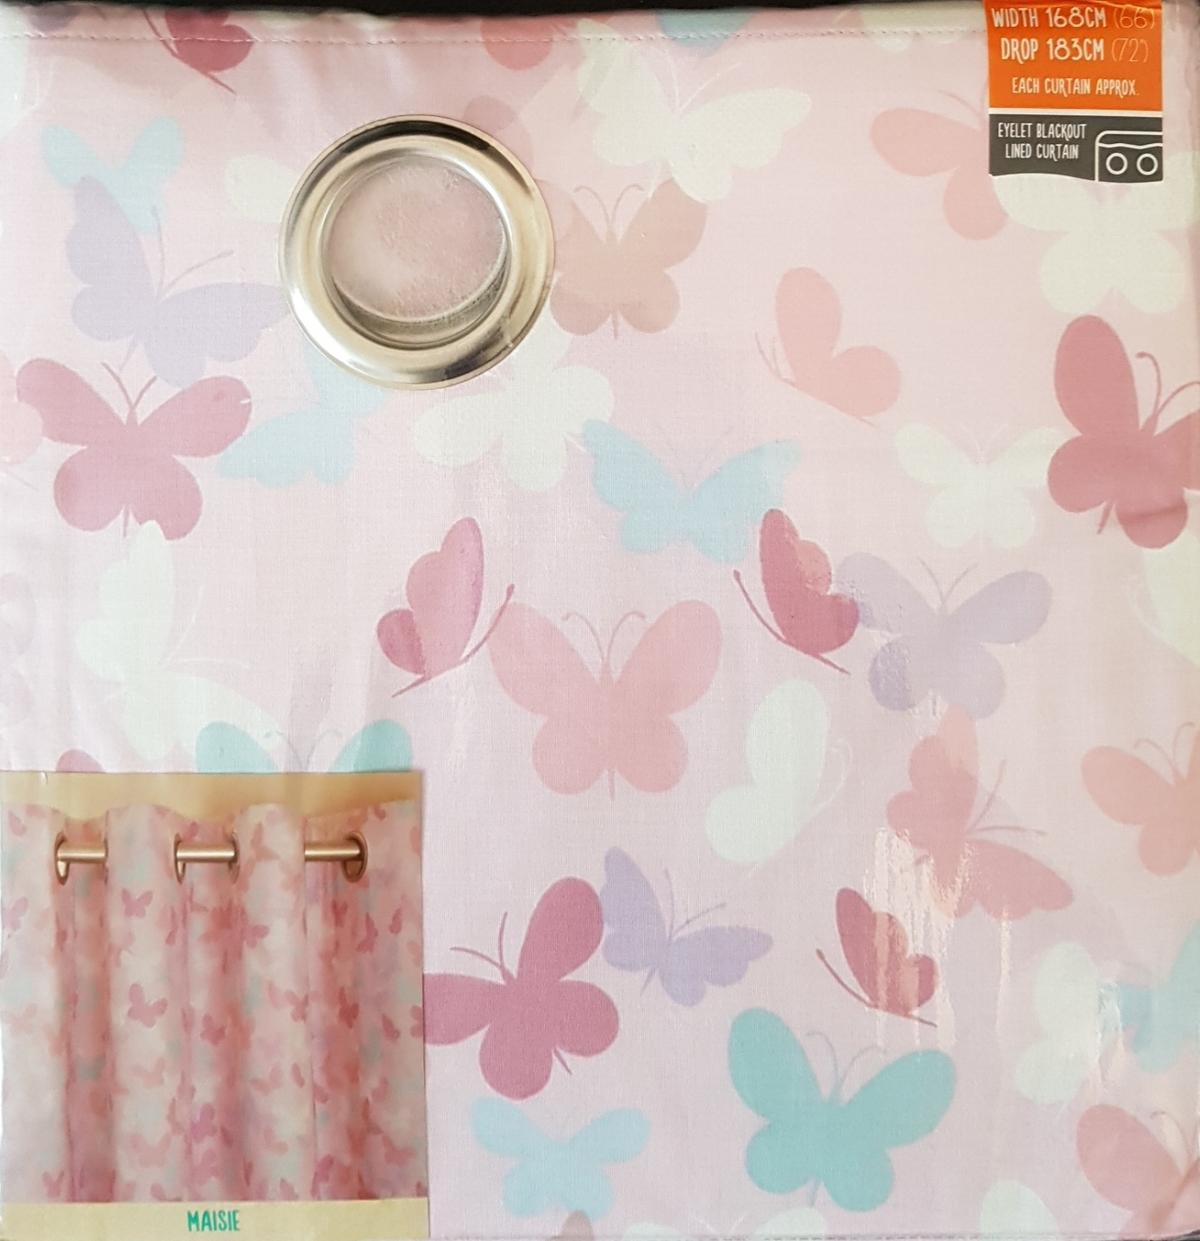 Brand New Kids Pink Blackout Eyelet Curtains In M12 Manchester For 28 00 For Sale Shpock